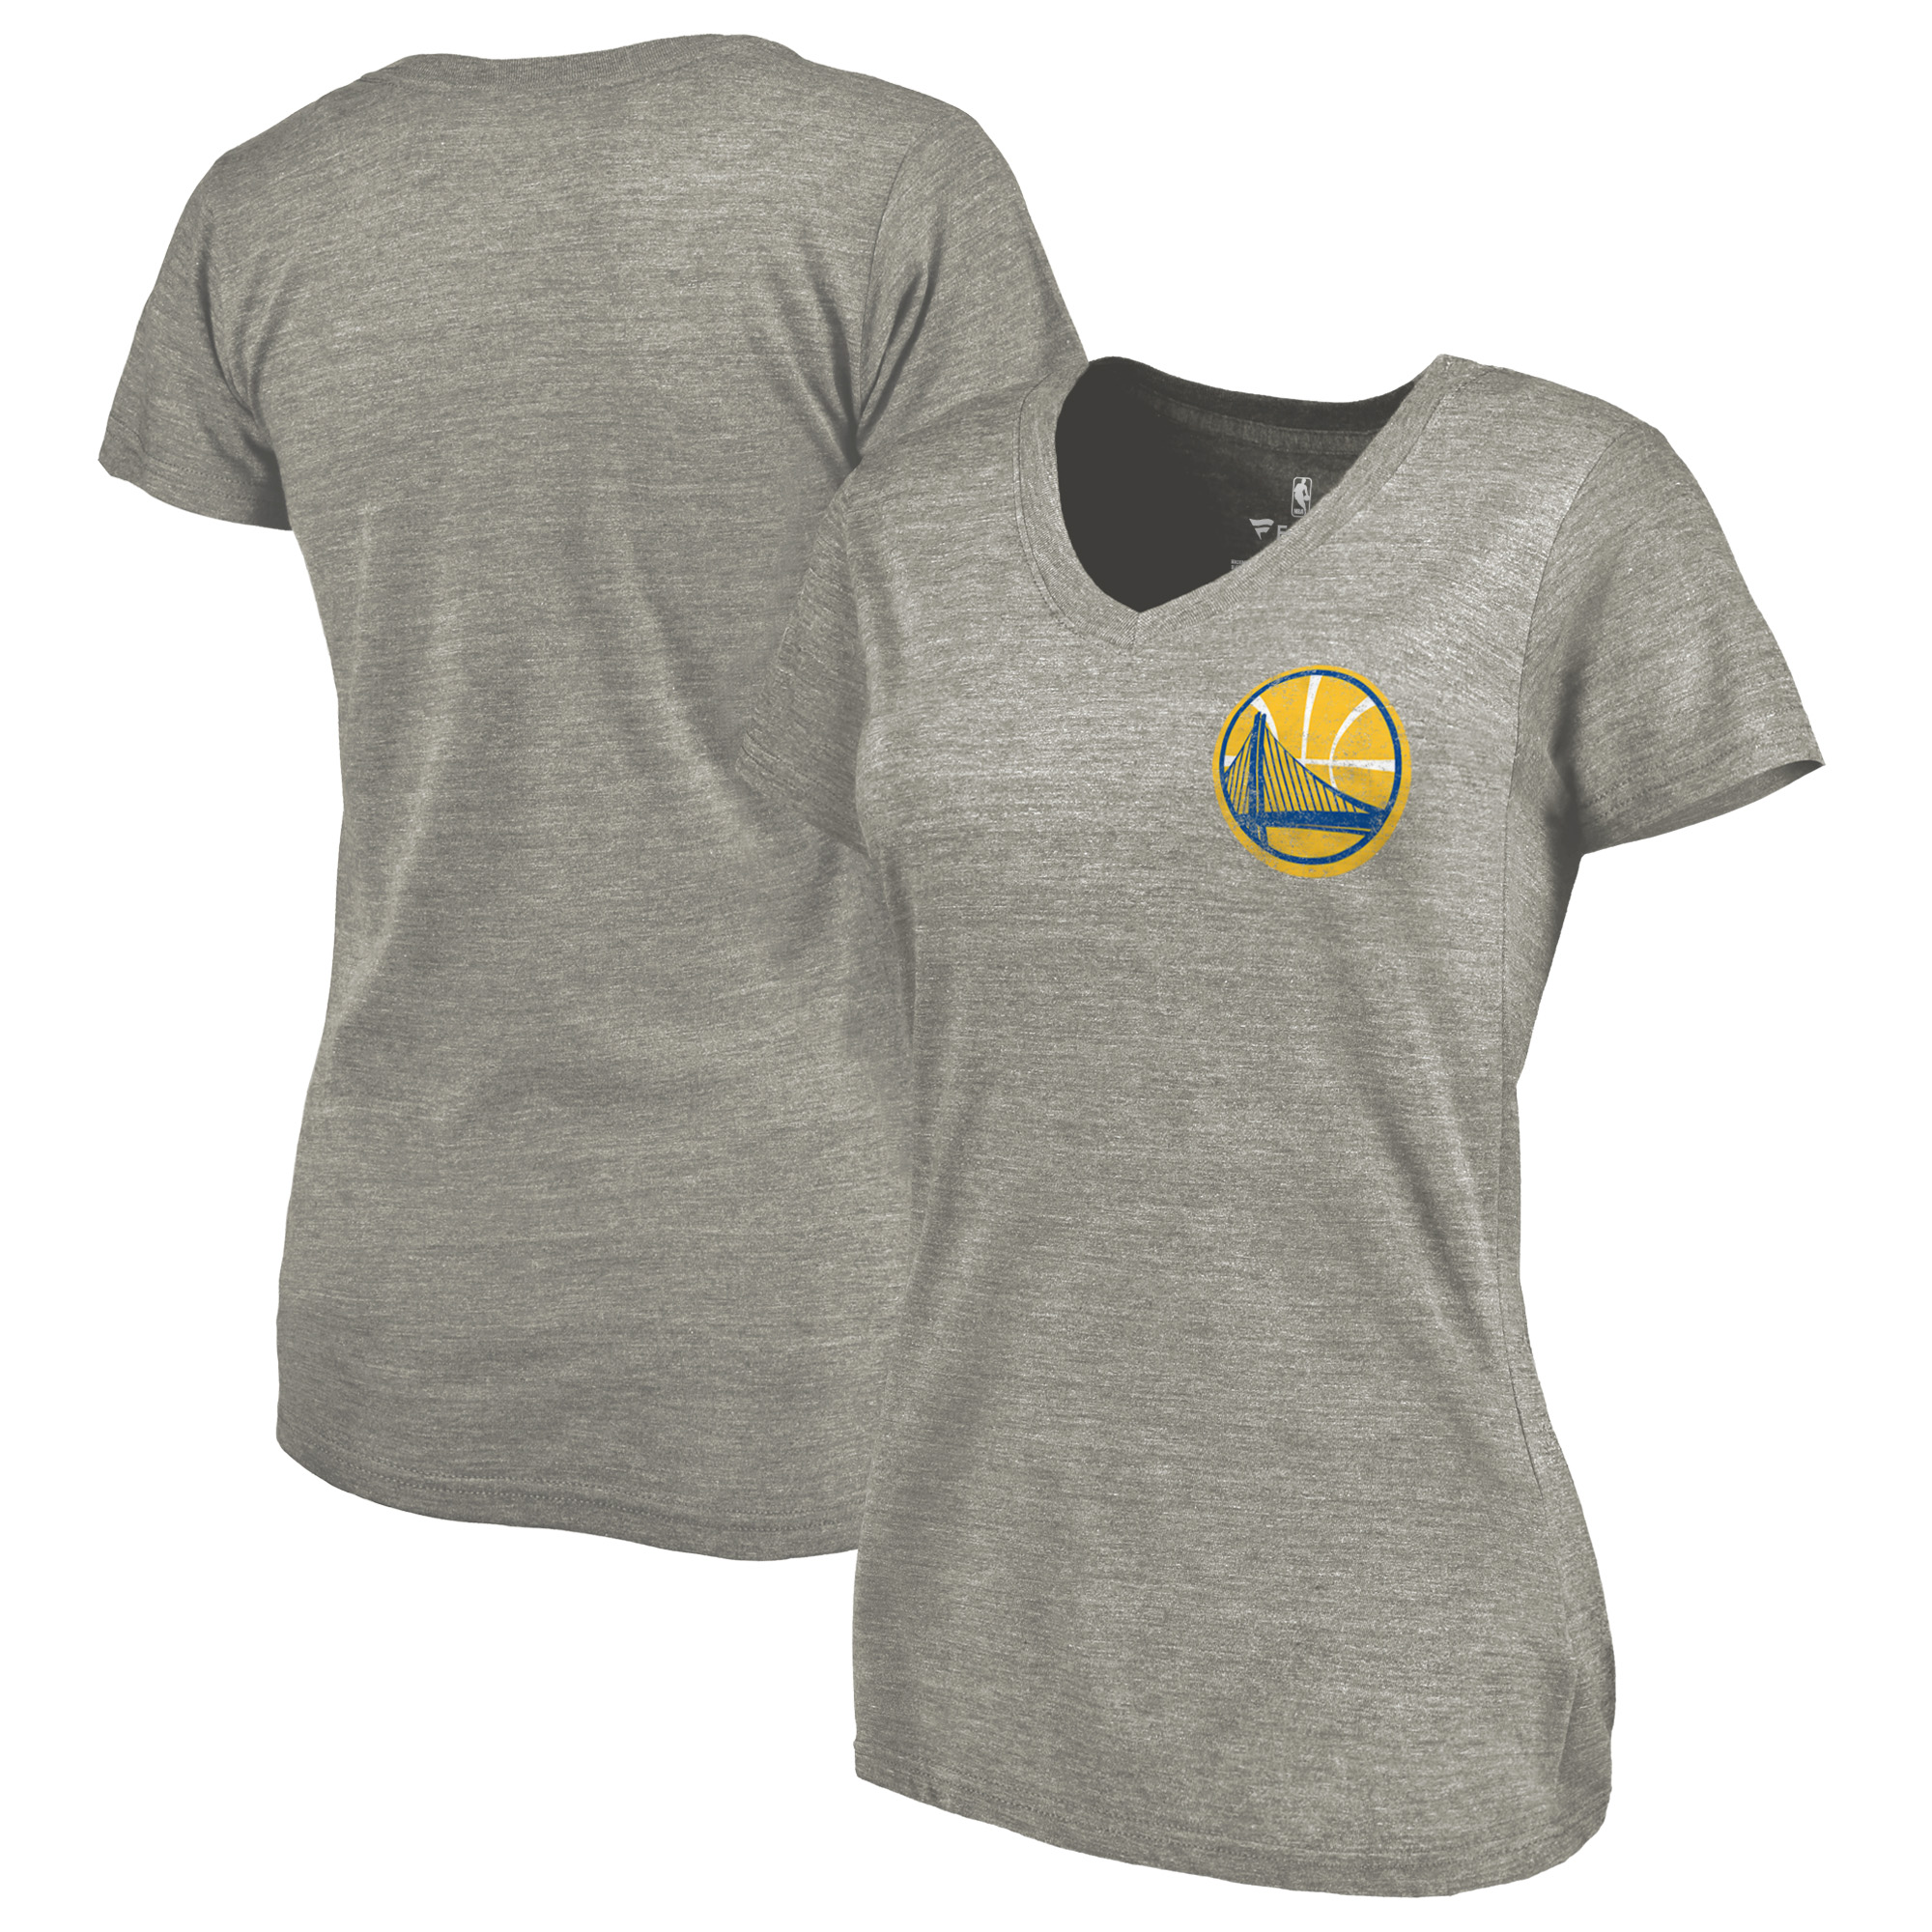 Golden State Warriors Fanatics Branded Women's Primary Logo Left Chest Distressed Tri-Blend V-Neck T-Shirt - Heathered Gray